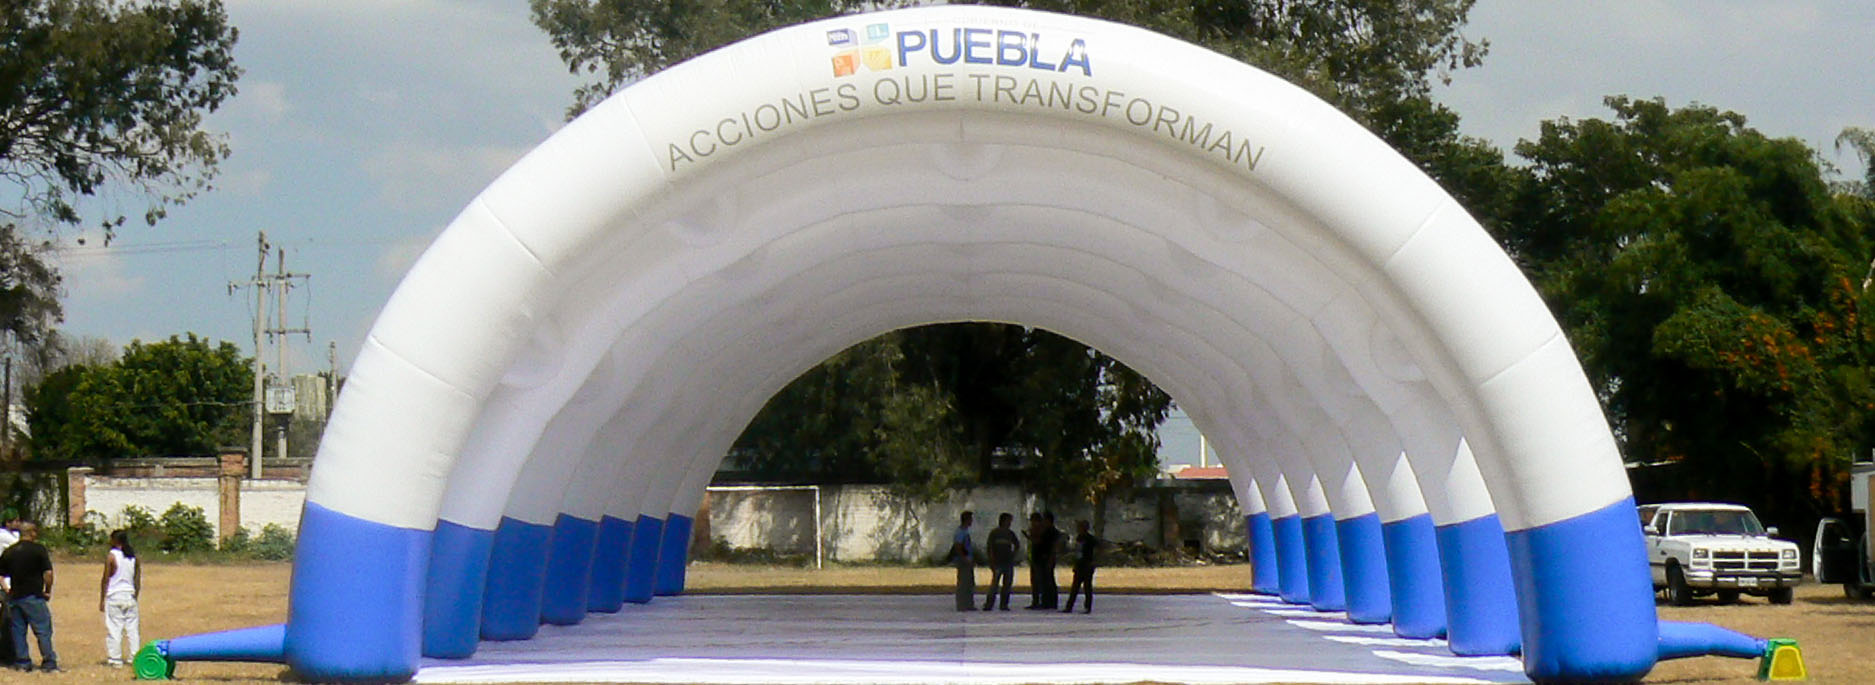 Puebla custom printed large inflatable tunnel for the State of Puebla in Mexico